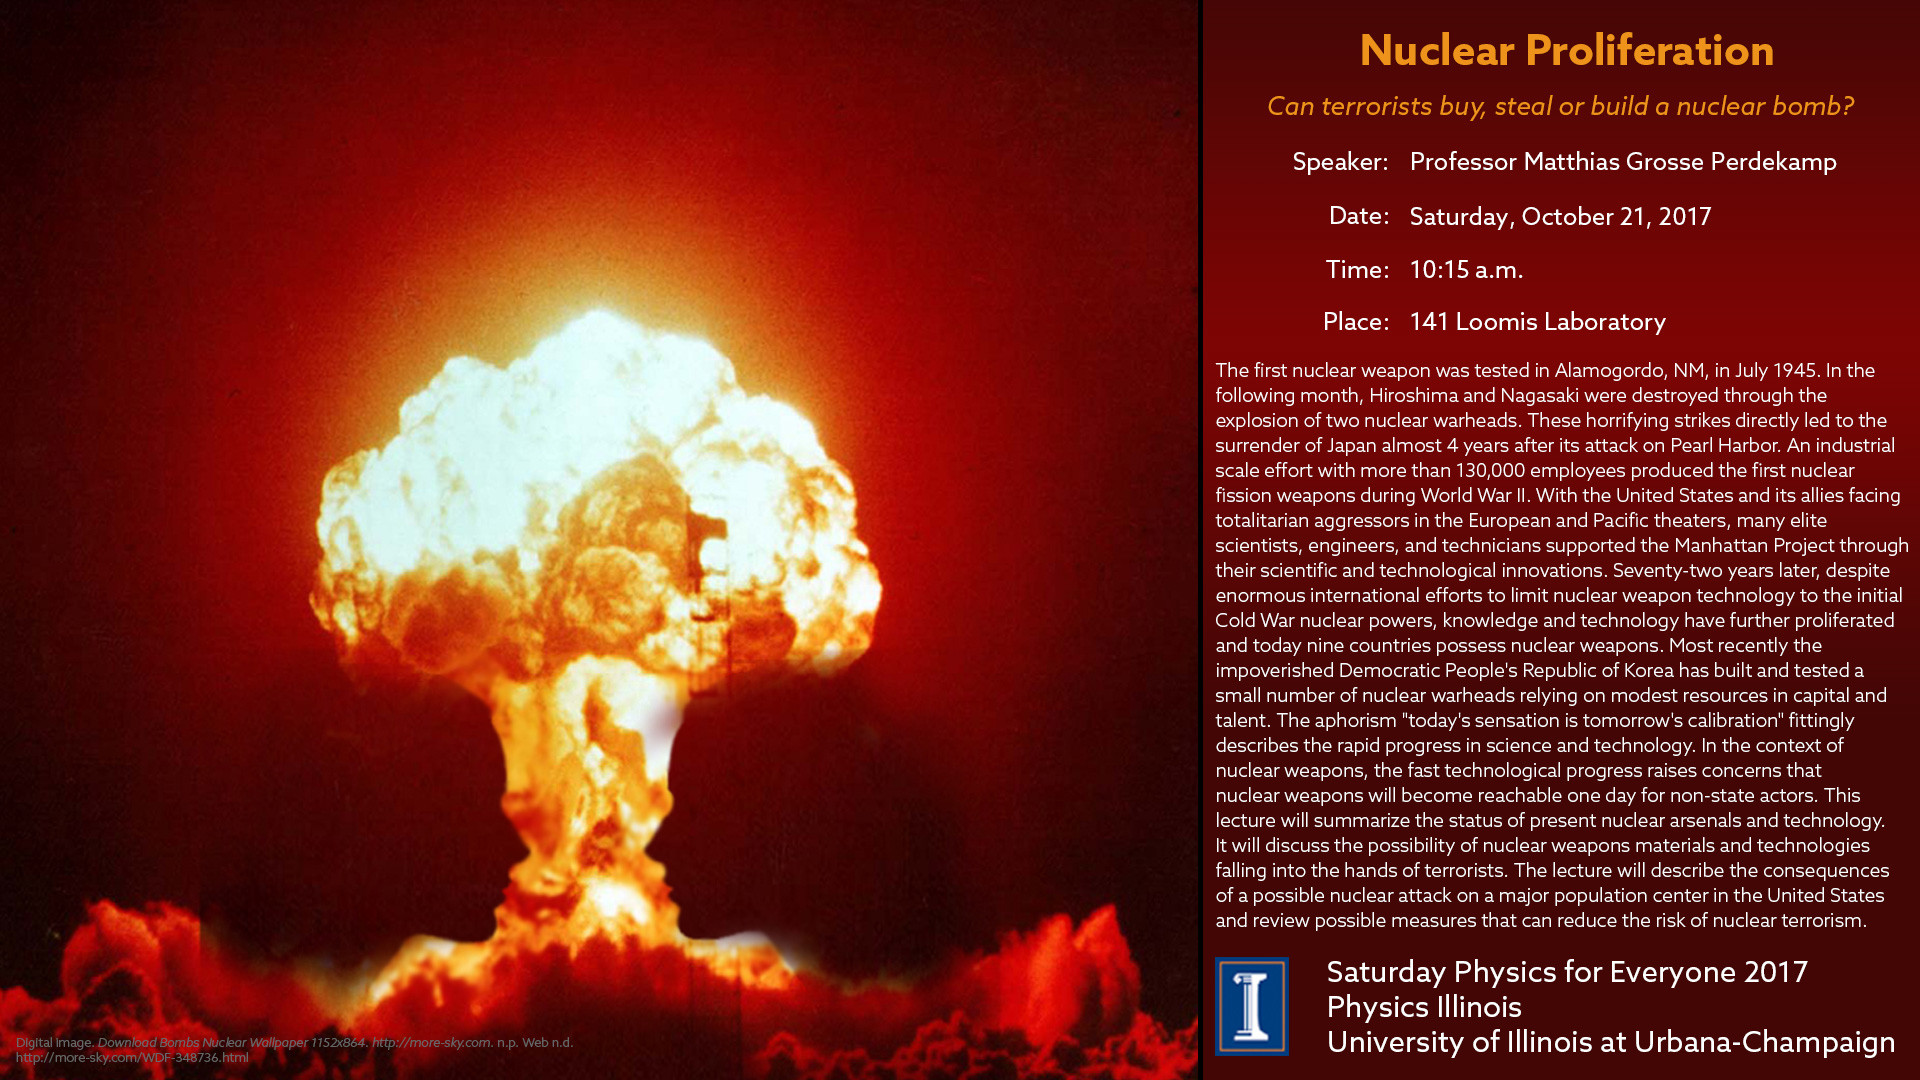 1920x1080 Download Bombs Nuclear Wallpaper 1152x864